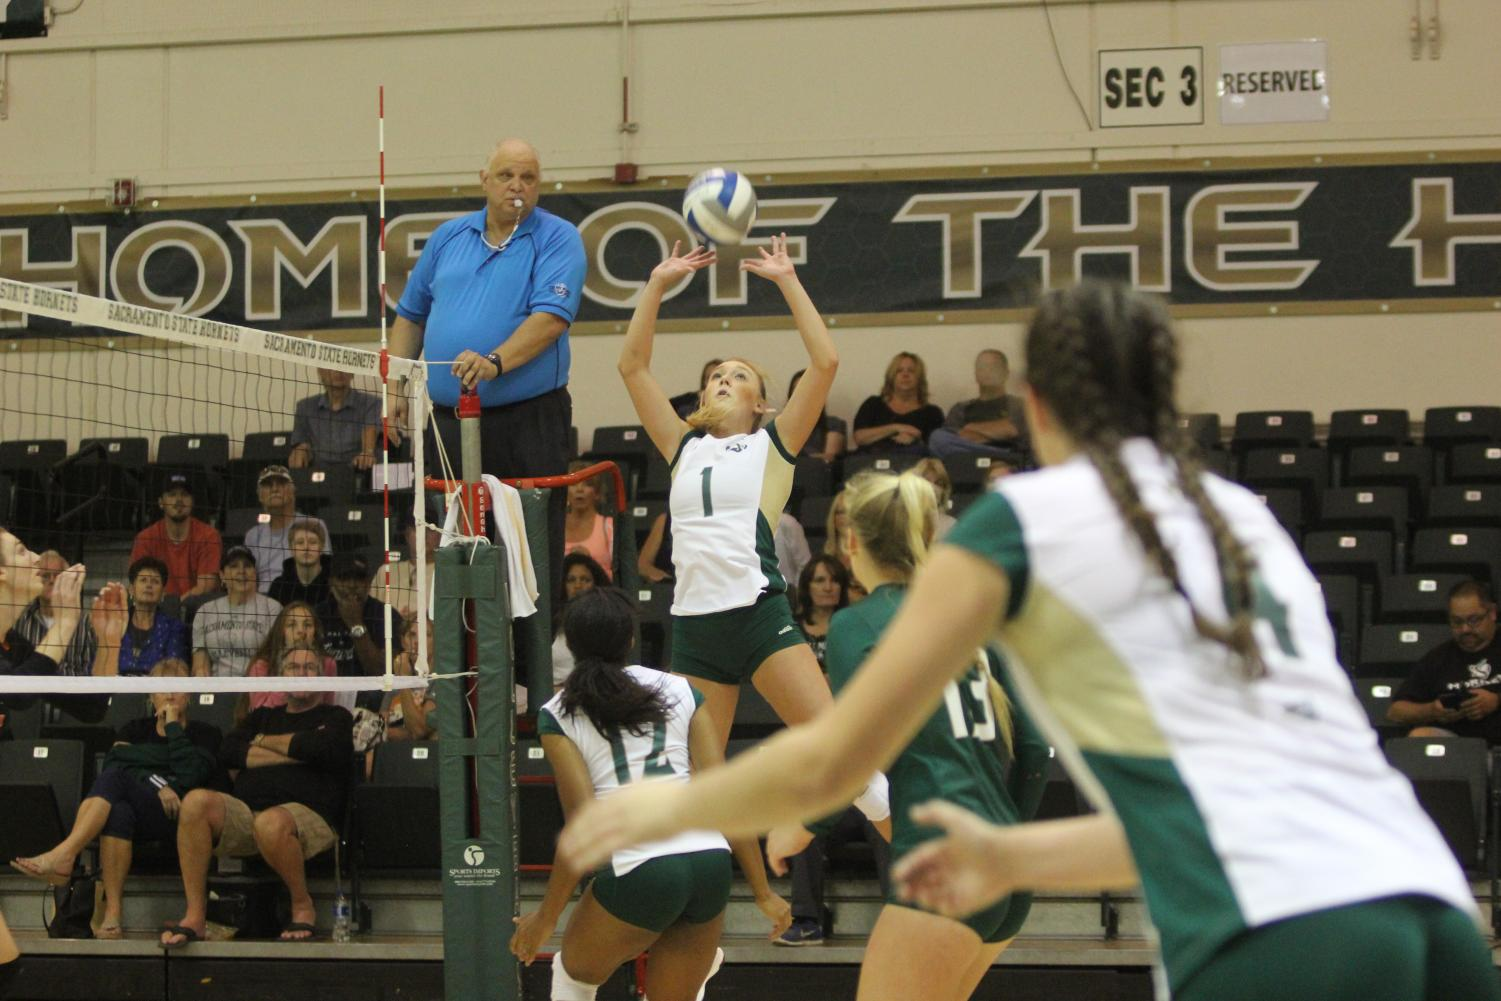 Sacramento State senior setter Kennedy Kurtz sets the ball to junior middle blocker Brie Gathright against Idaho State at Colberg Court in the Nest on Saturday, Sept. 23, 2017. The Hornets will host the Big Sky Tournament and put their 24 consecutive conference home-game winning streak on the line from Thursday to Saturday.